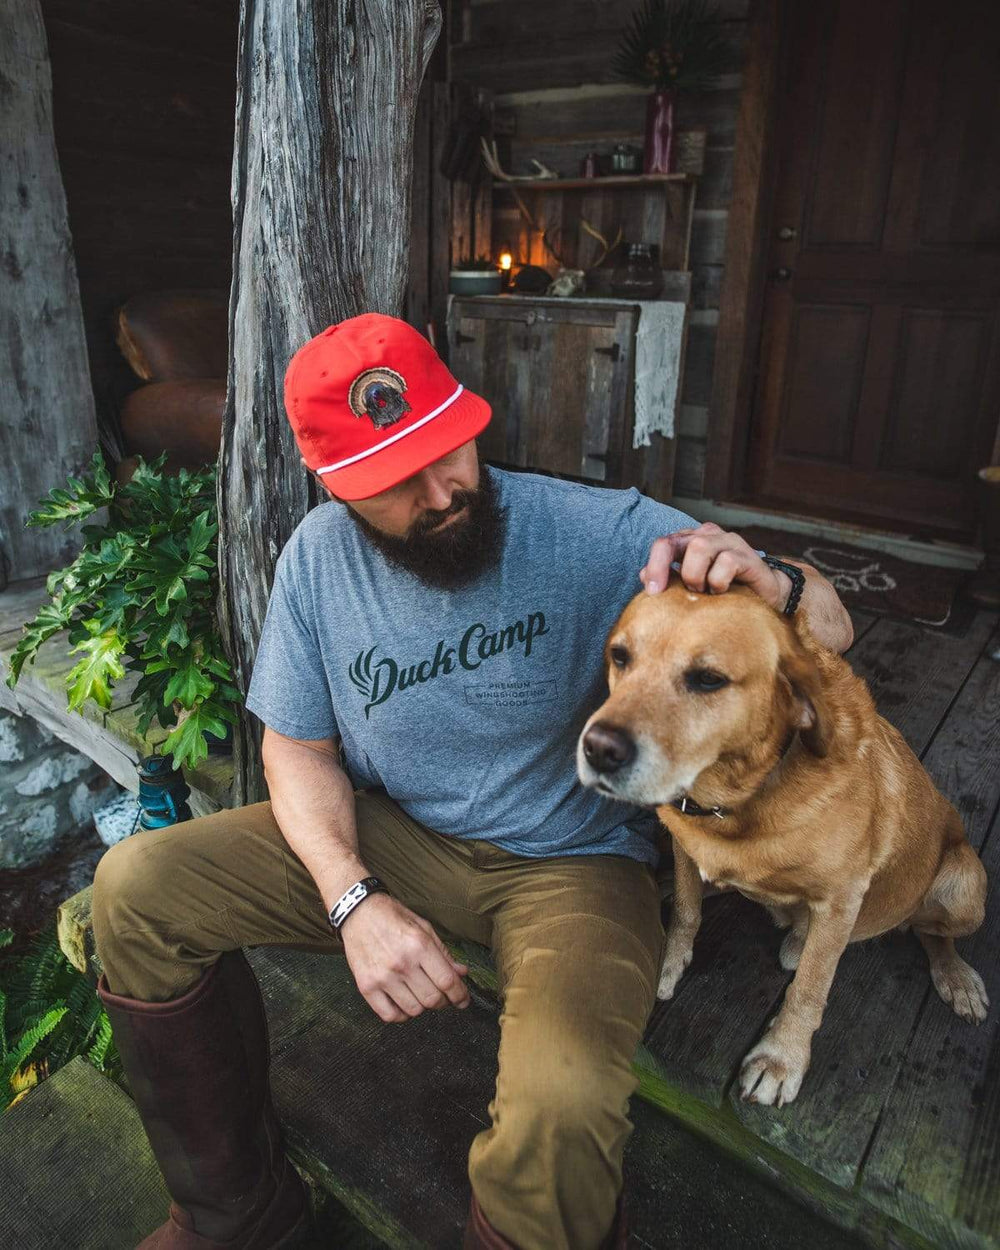 Duck Camp Logo Shirt - Duck Camp